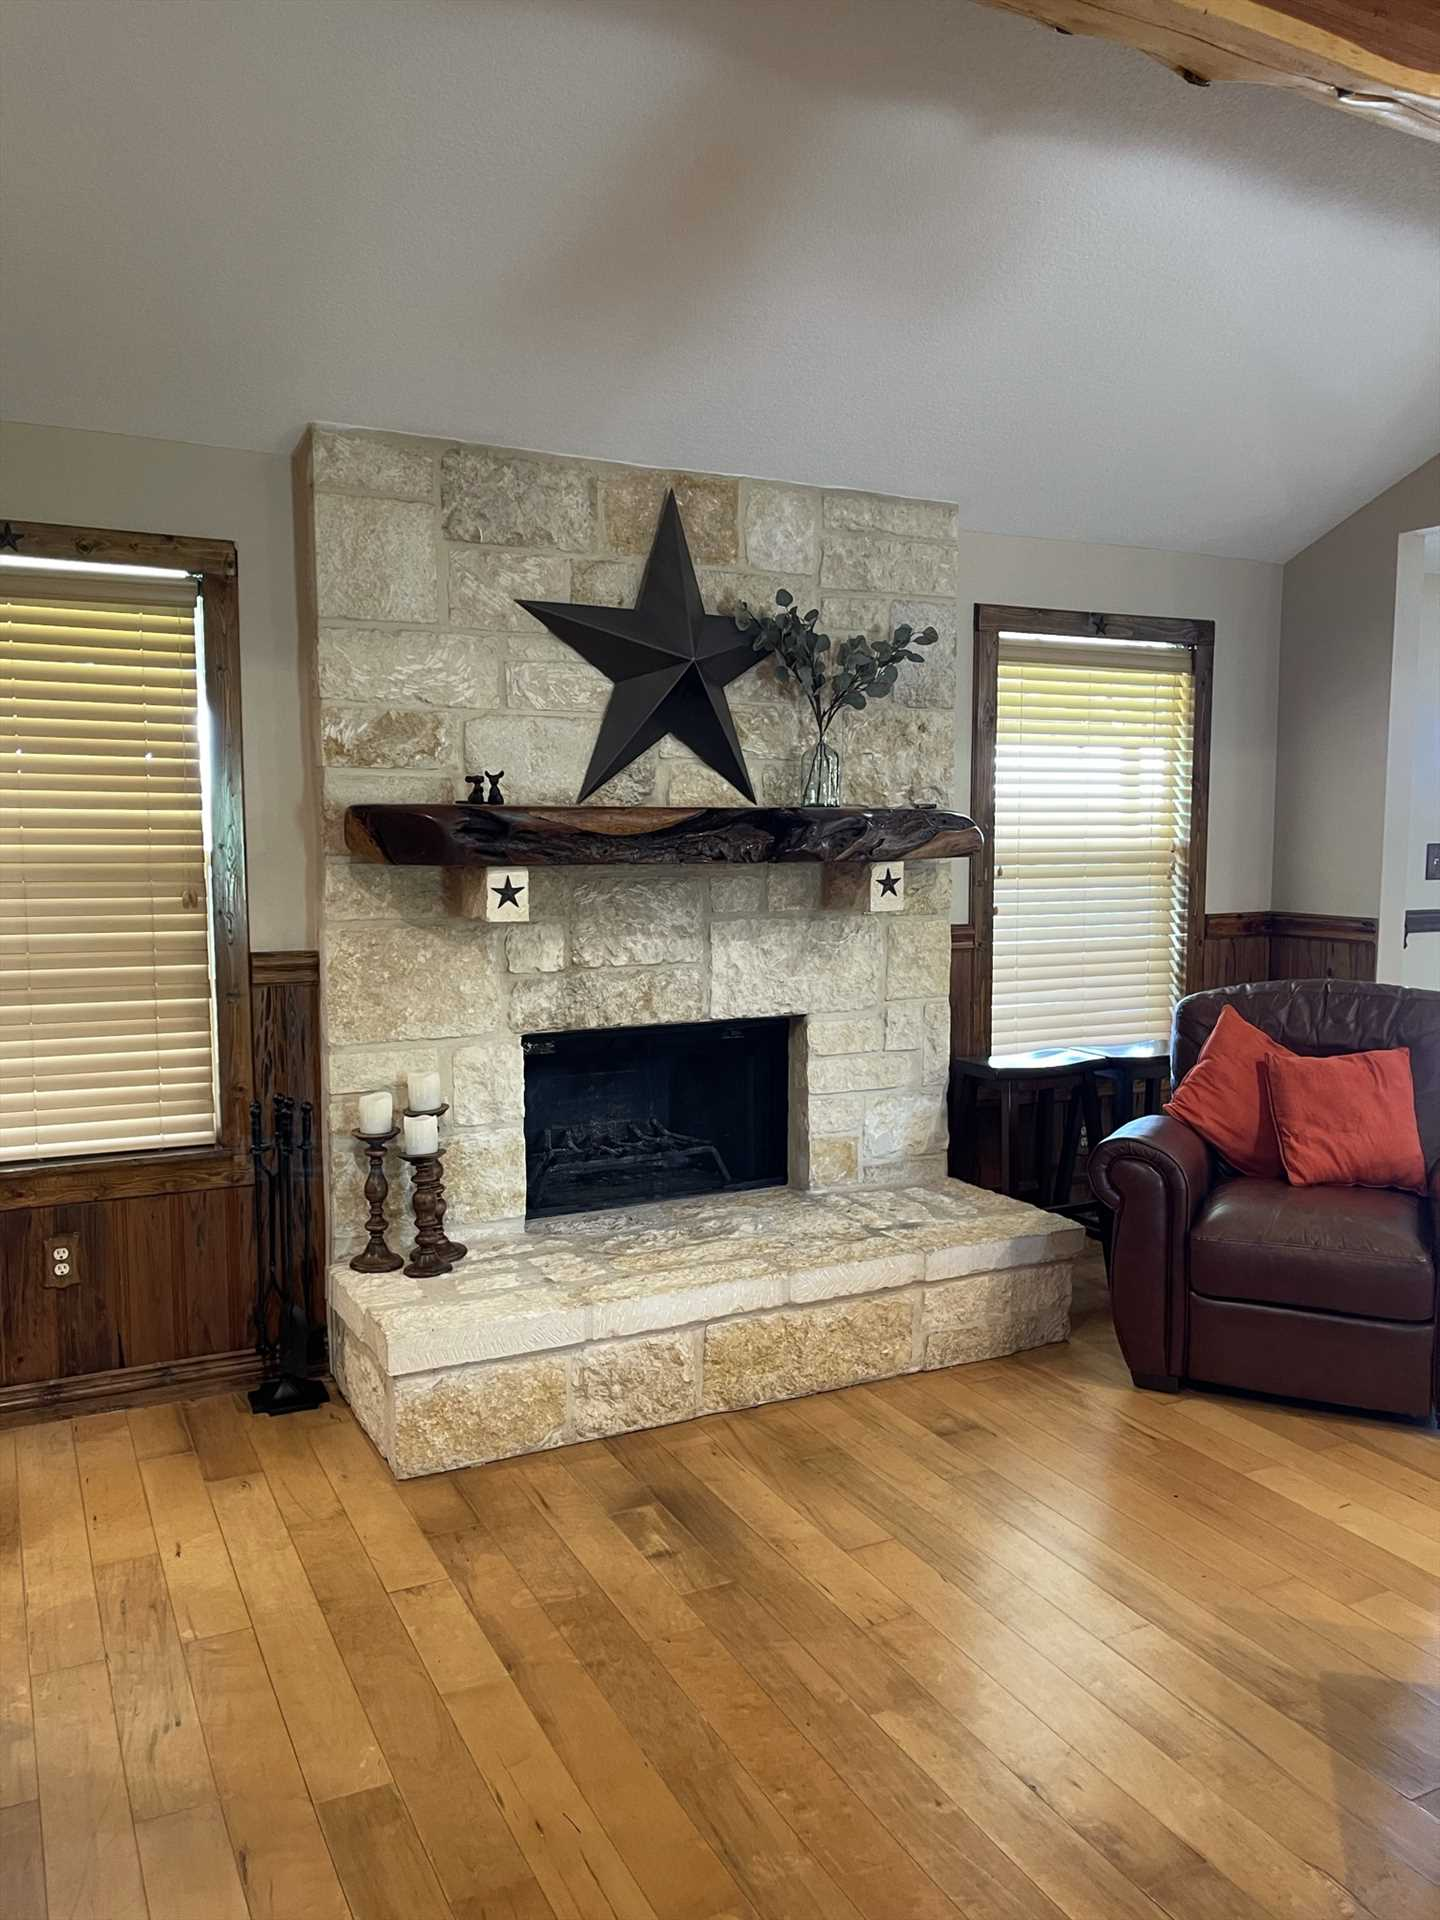 Lone star touches and stone work throughout the retreat give it a robust and welcoming ranch feel.